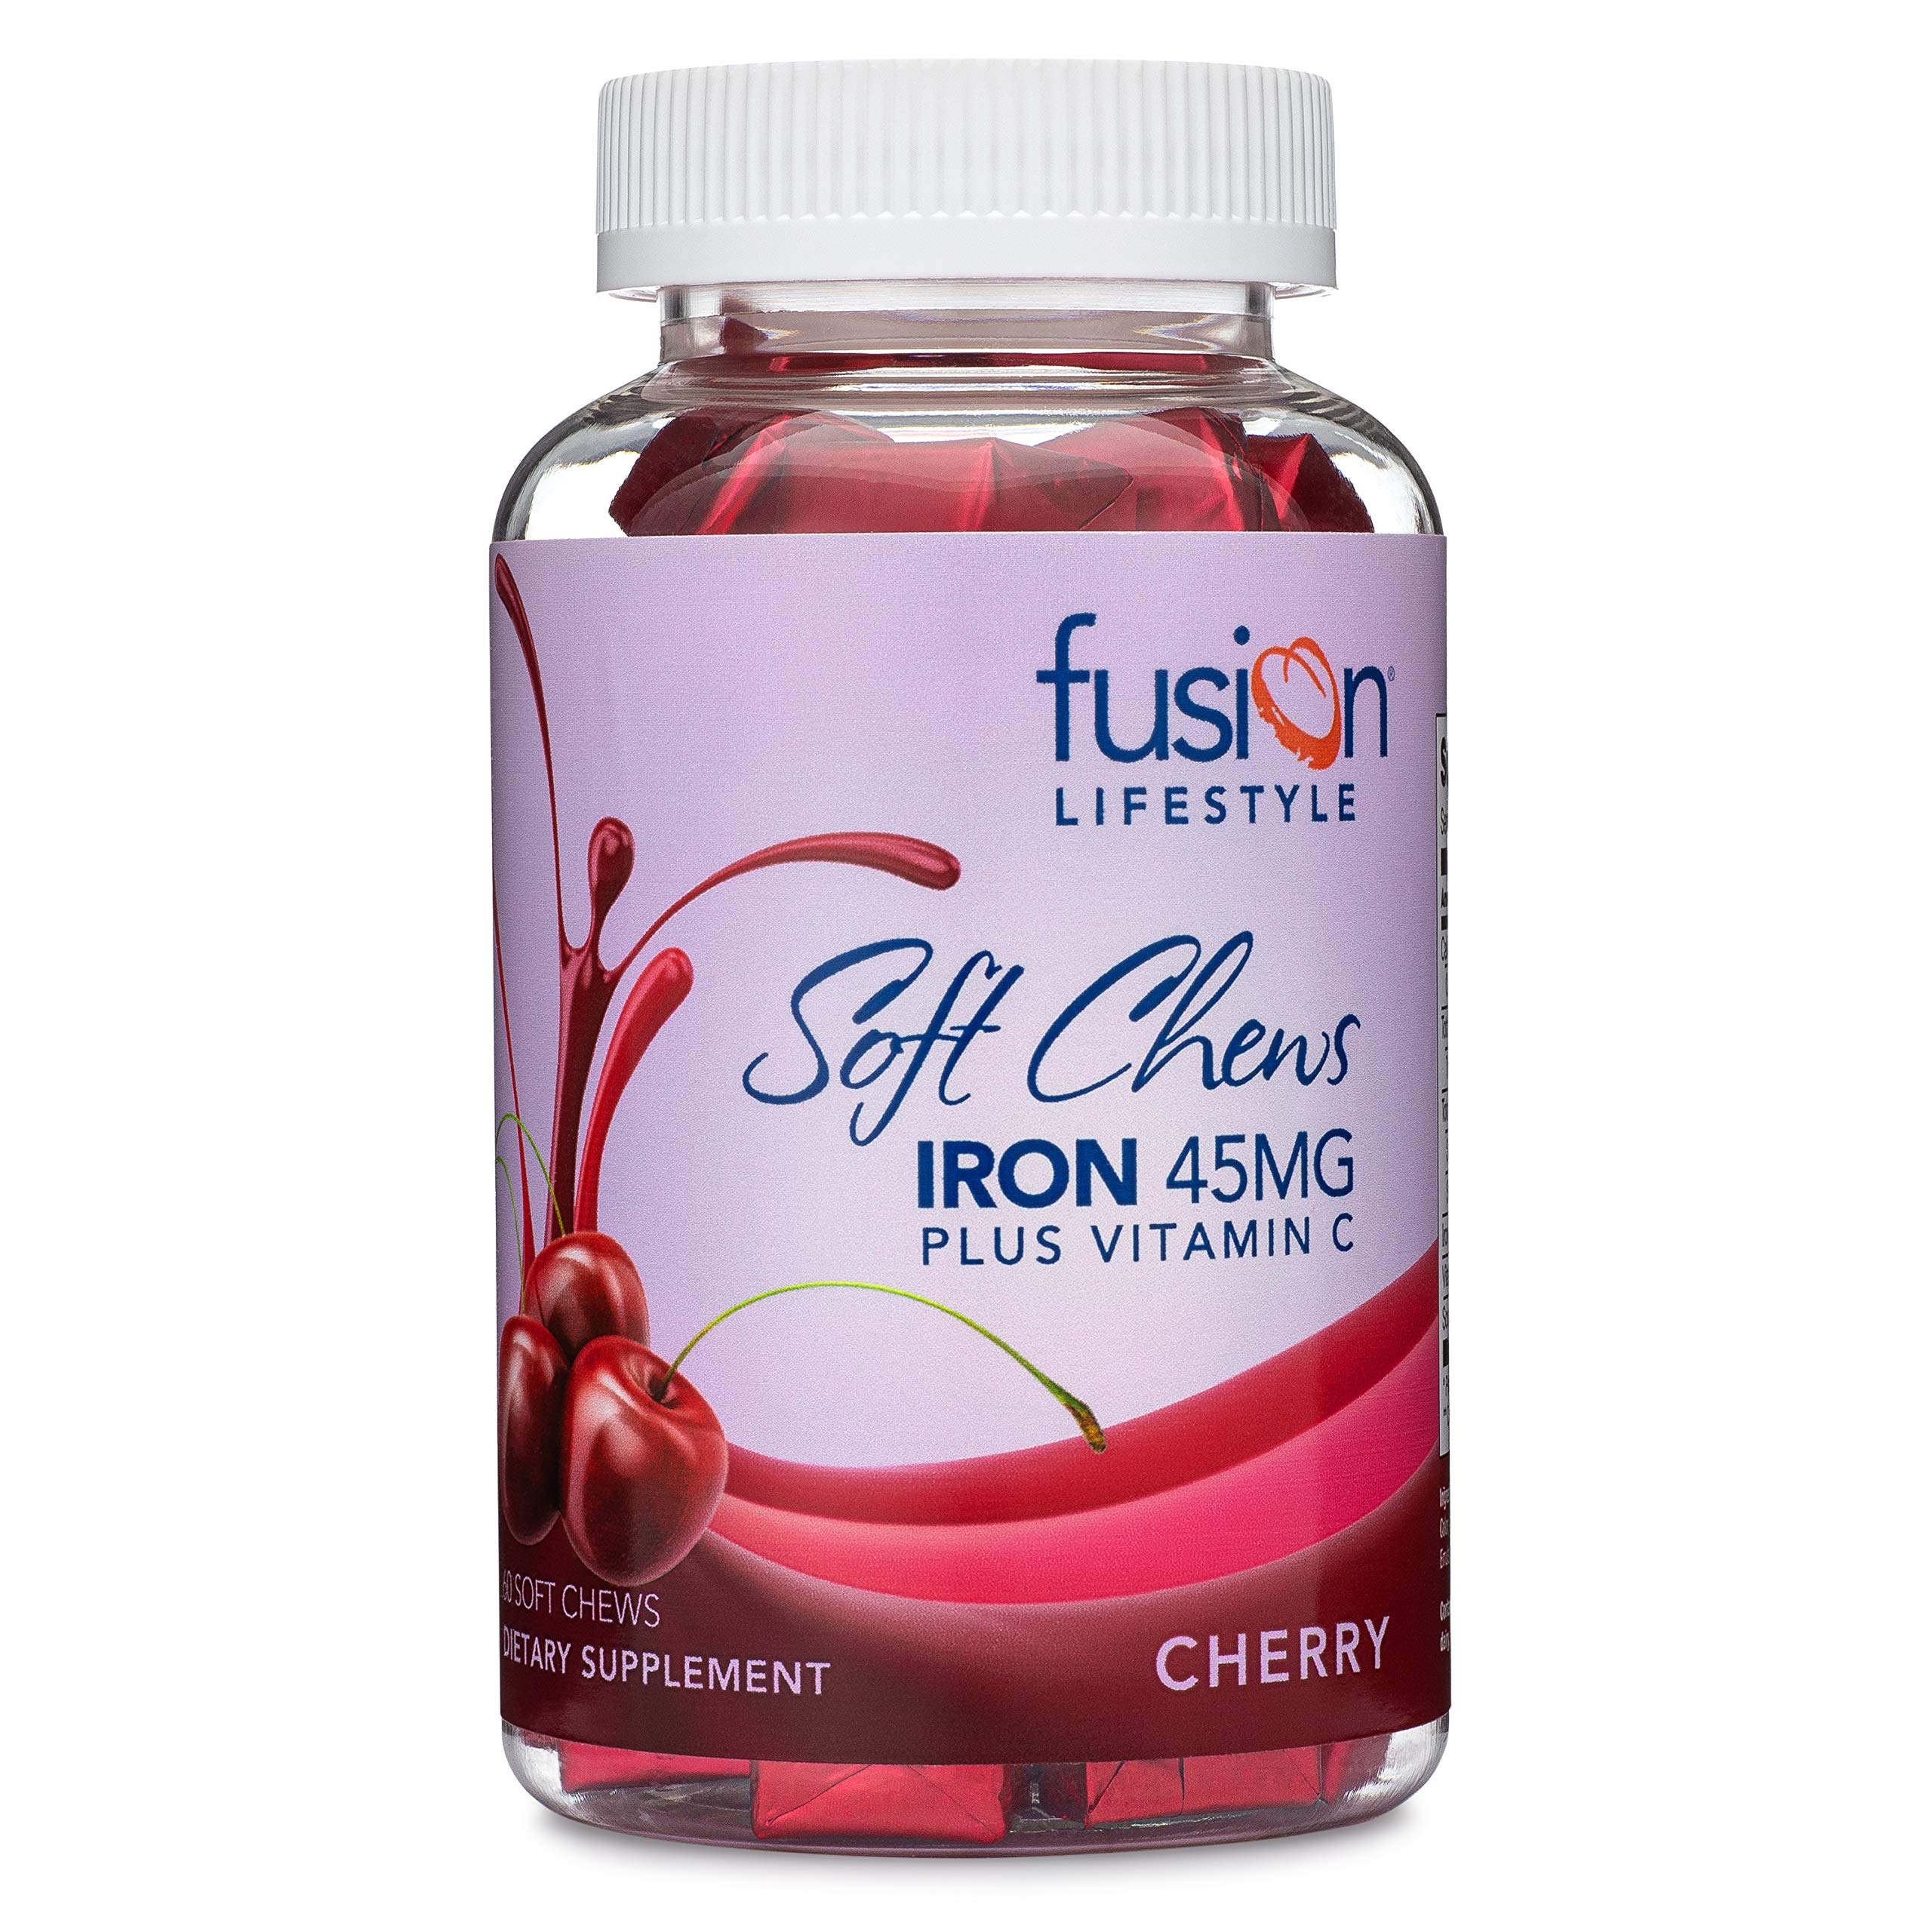 Fusion Lifestyle 45 mg Iron Supplement Cherry Flavored Soft Chew Plus Vitamin C